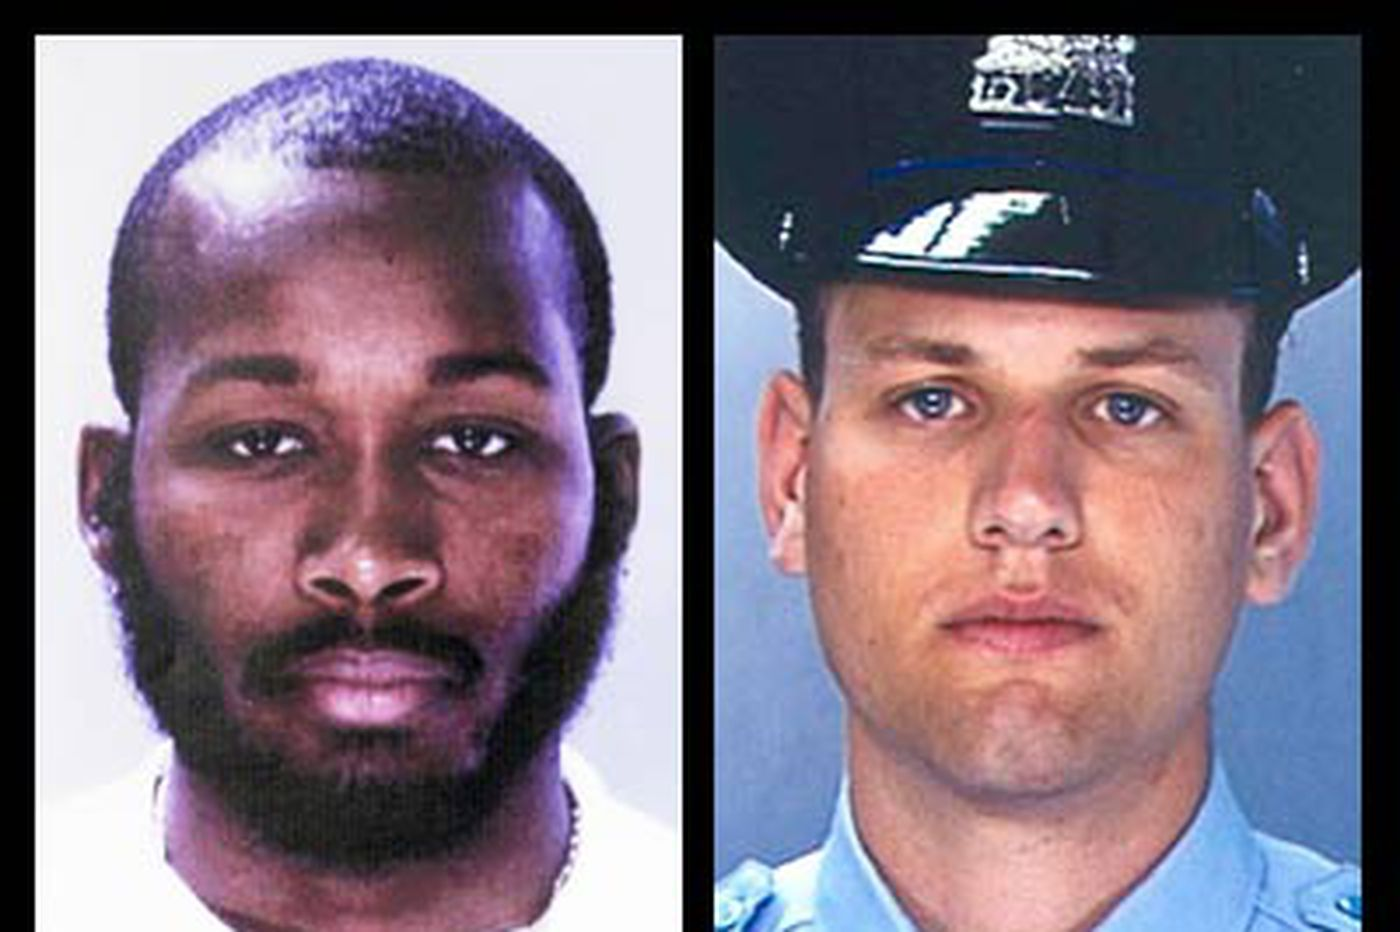 Jury selection to start in officer's death